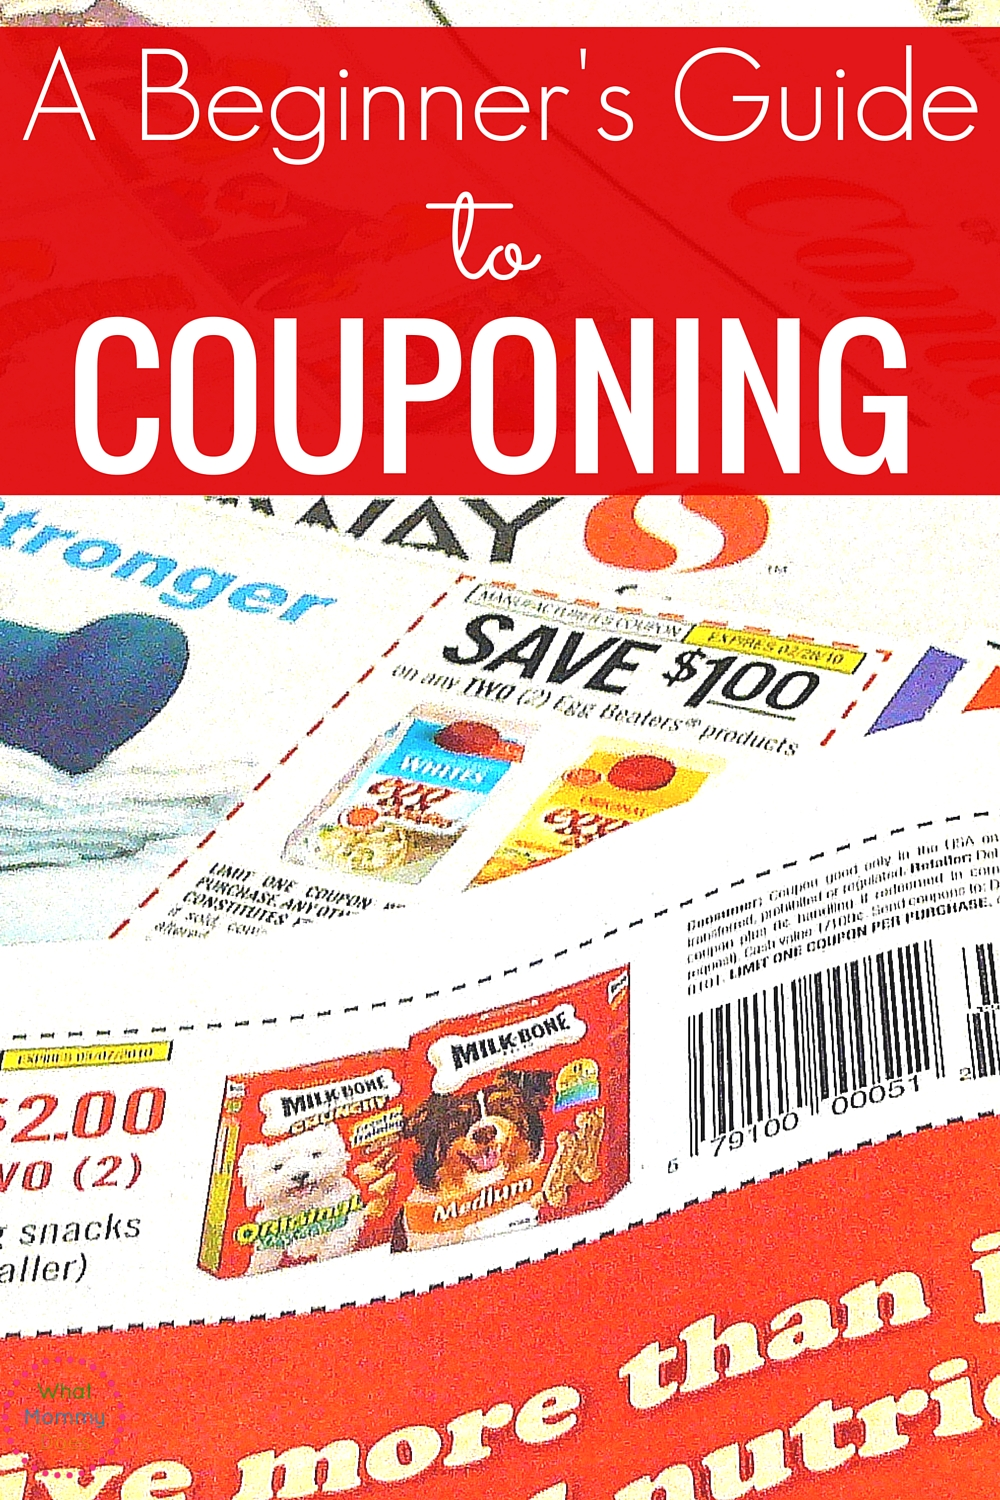 This couponing for beginners crash course is amazing! It's very helpful if you want to save money on groceries and other items!